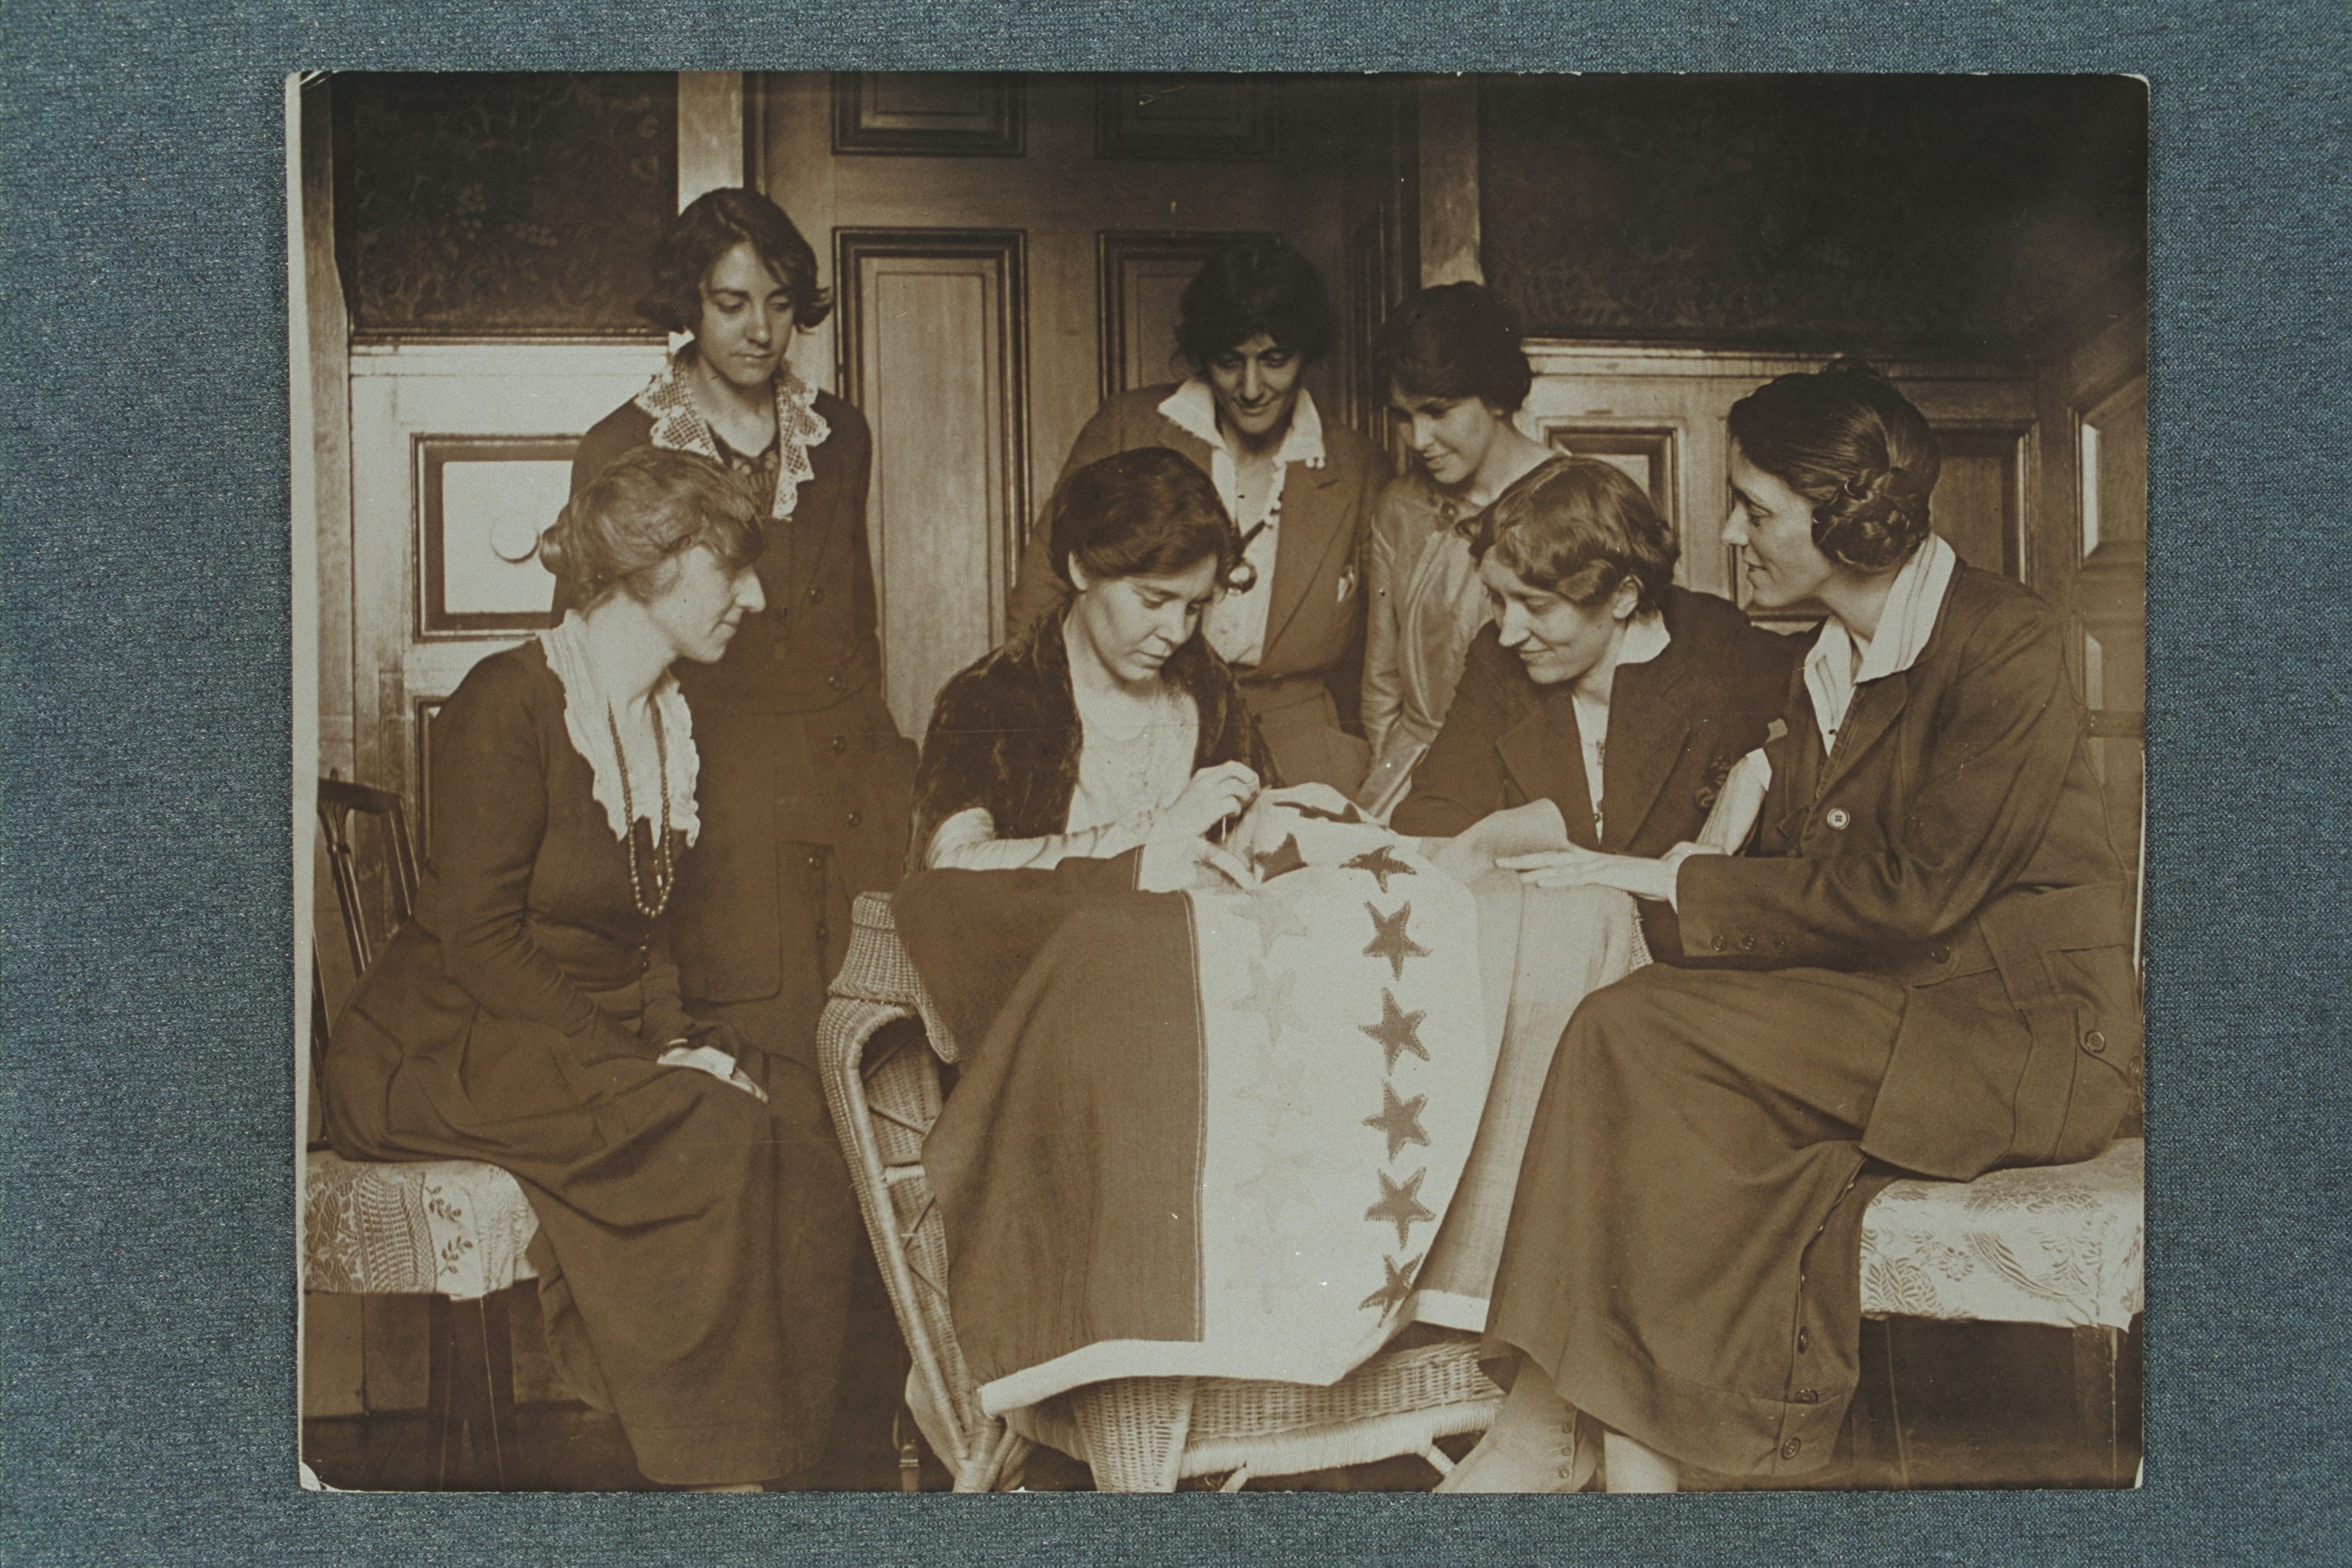 Photograph of Alice Paul sewing stars on the suffrage flag as others look on